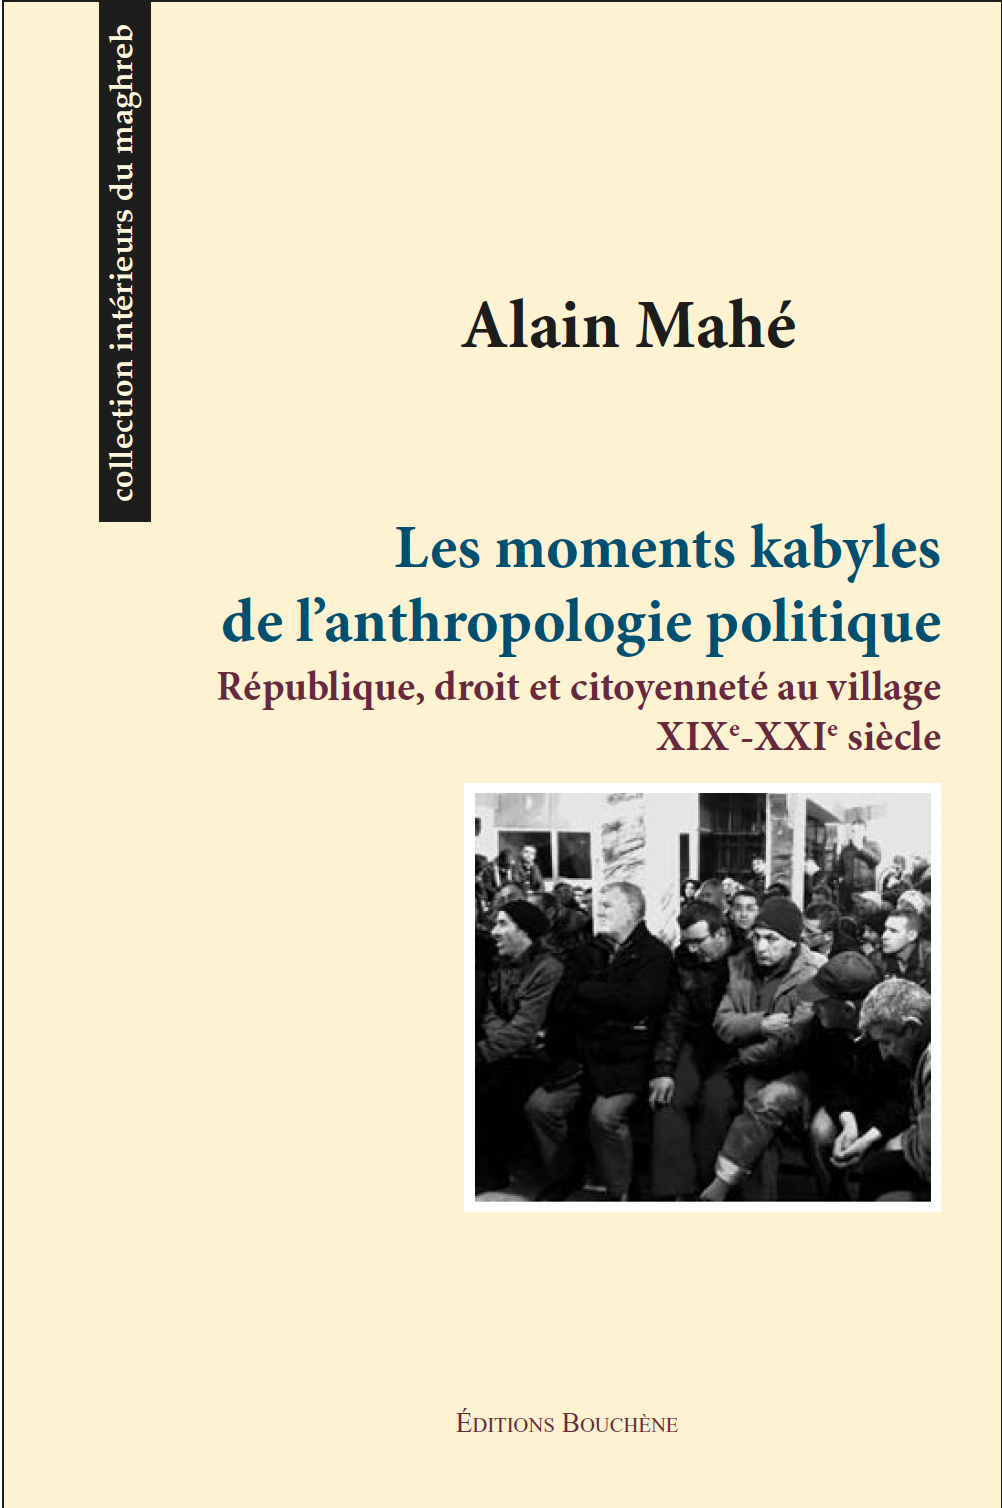 Les moments kabyles de l'anthropologie politique